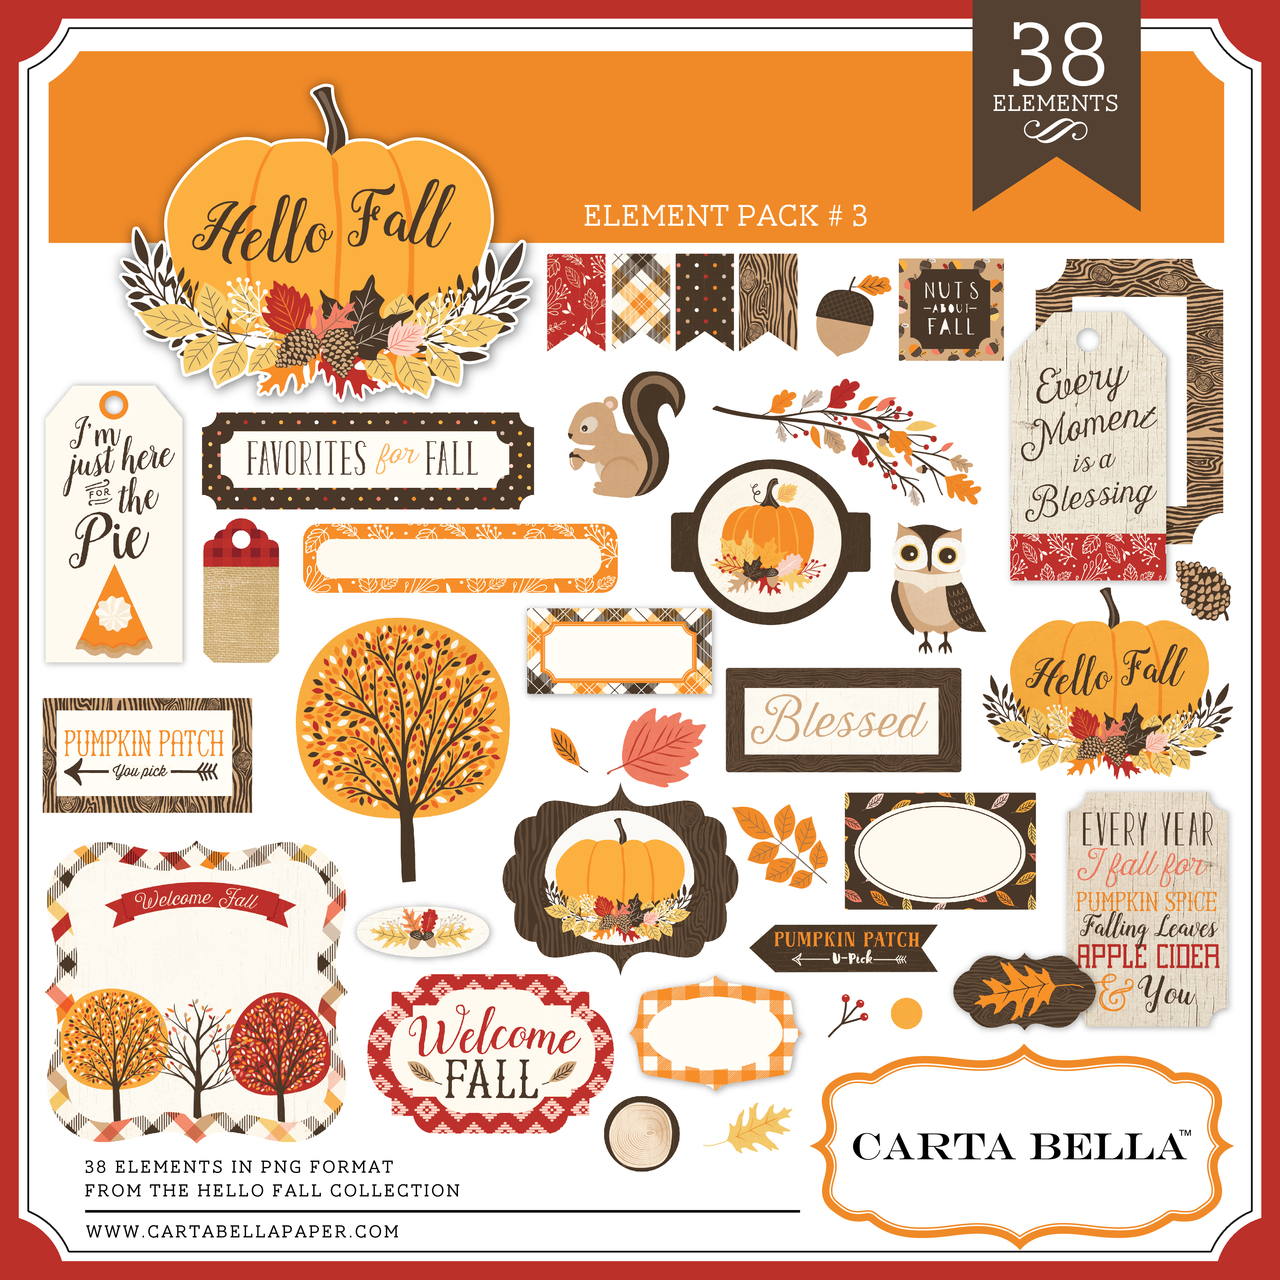 Hello Fall Element Pack #3